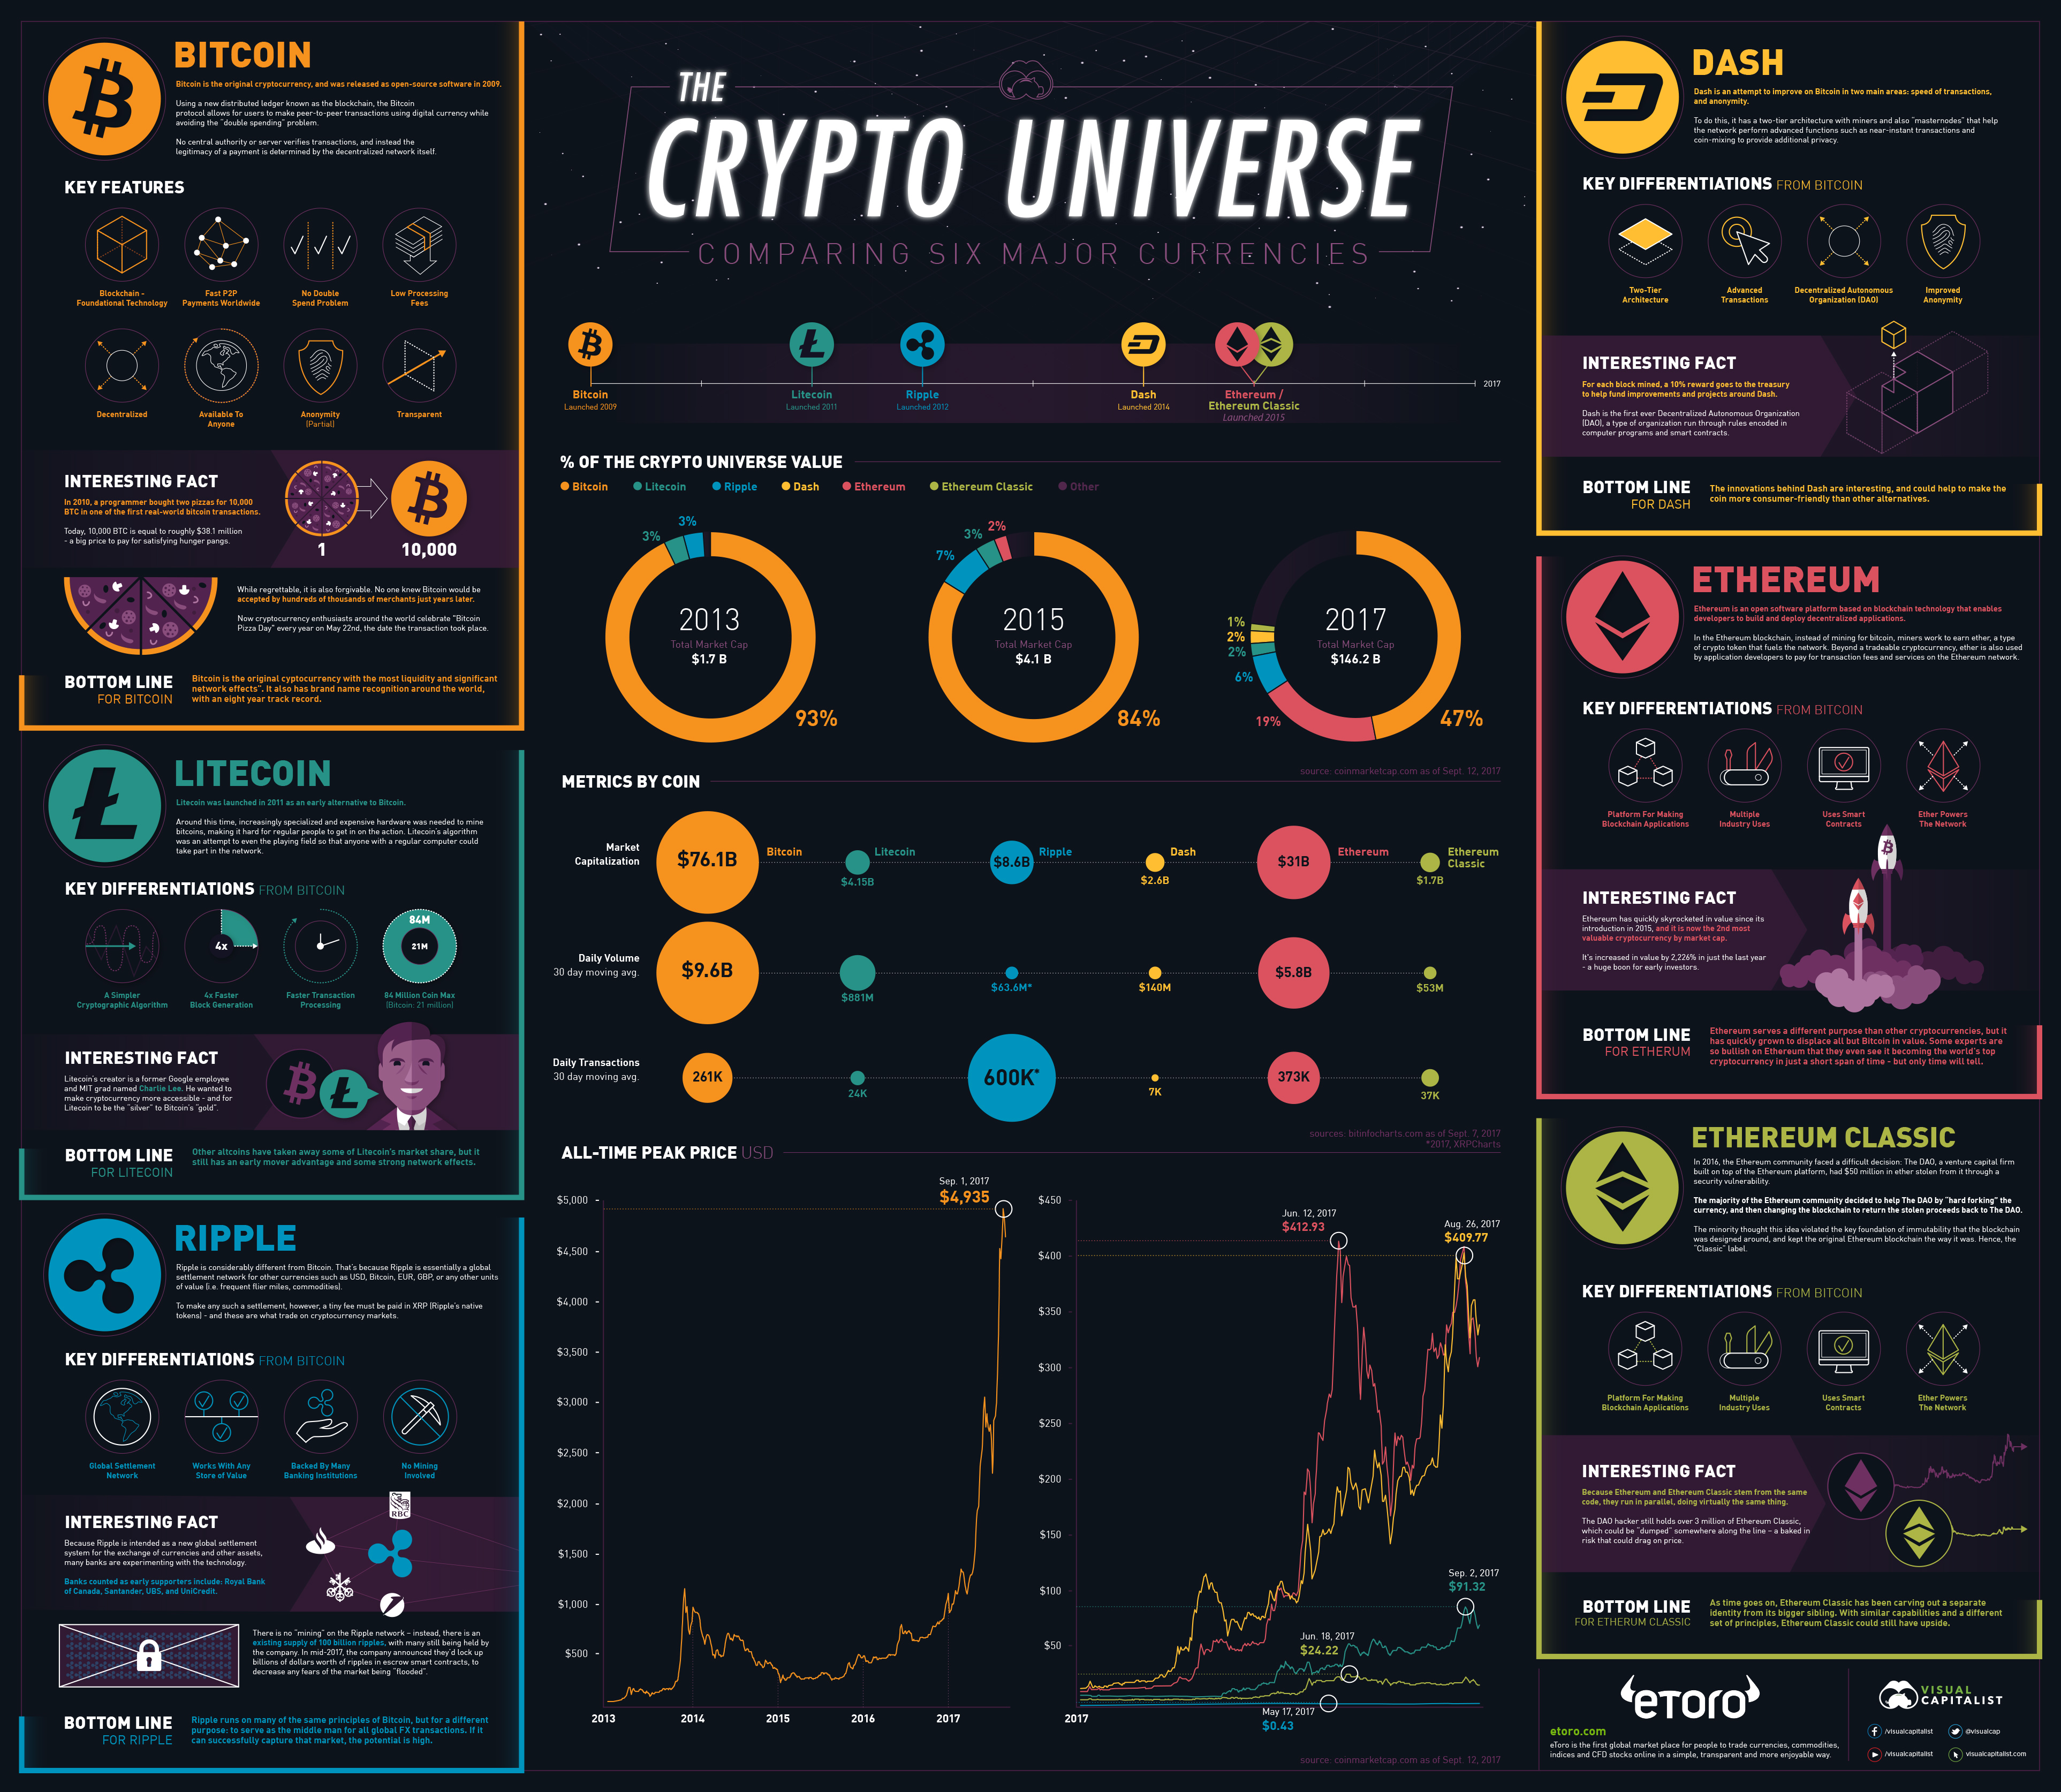 Cryptocurrency Infographic by visualcapitalist.com